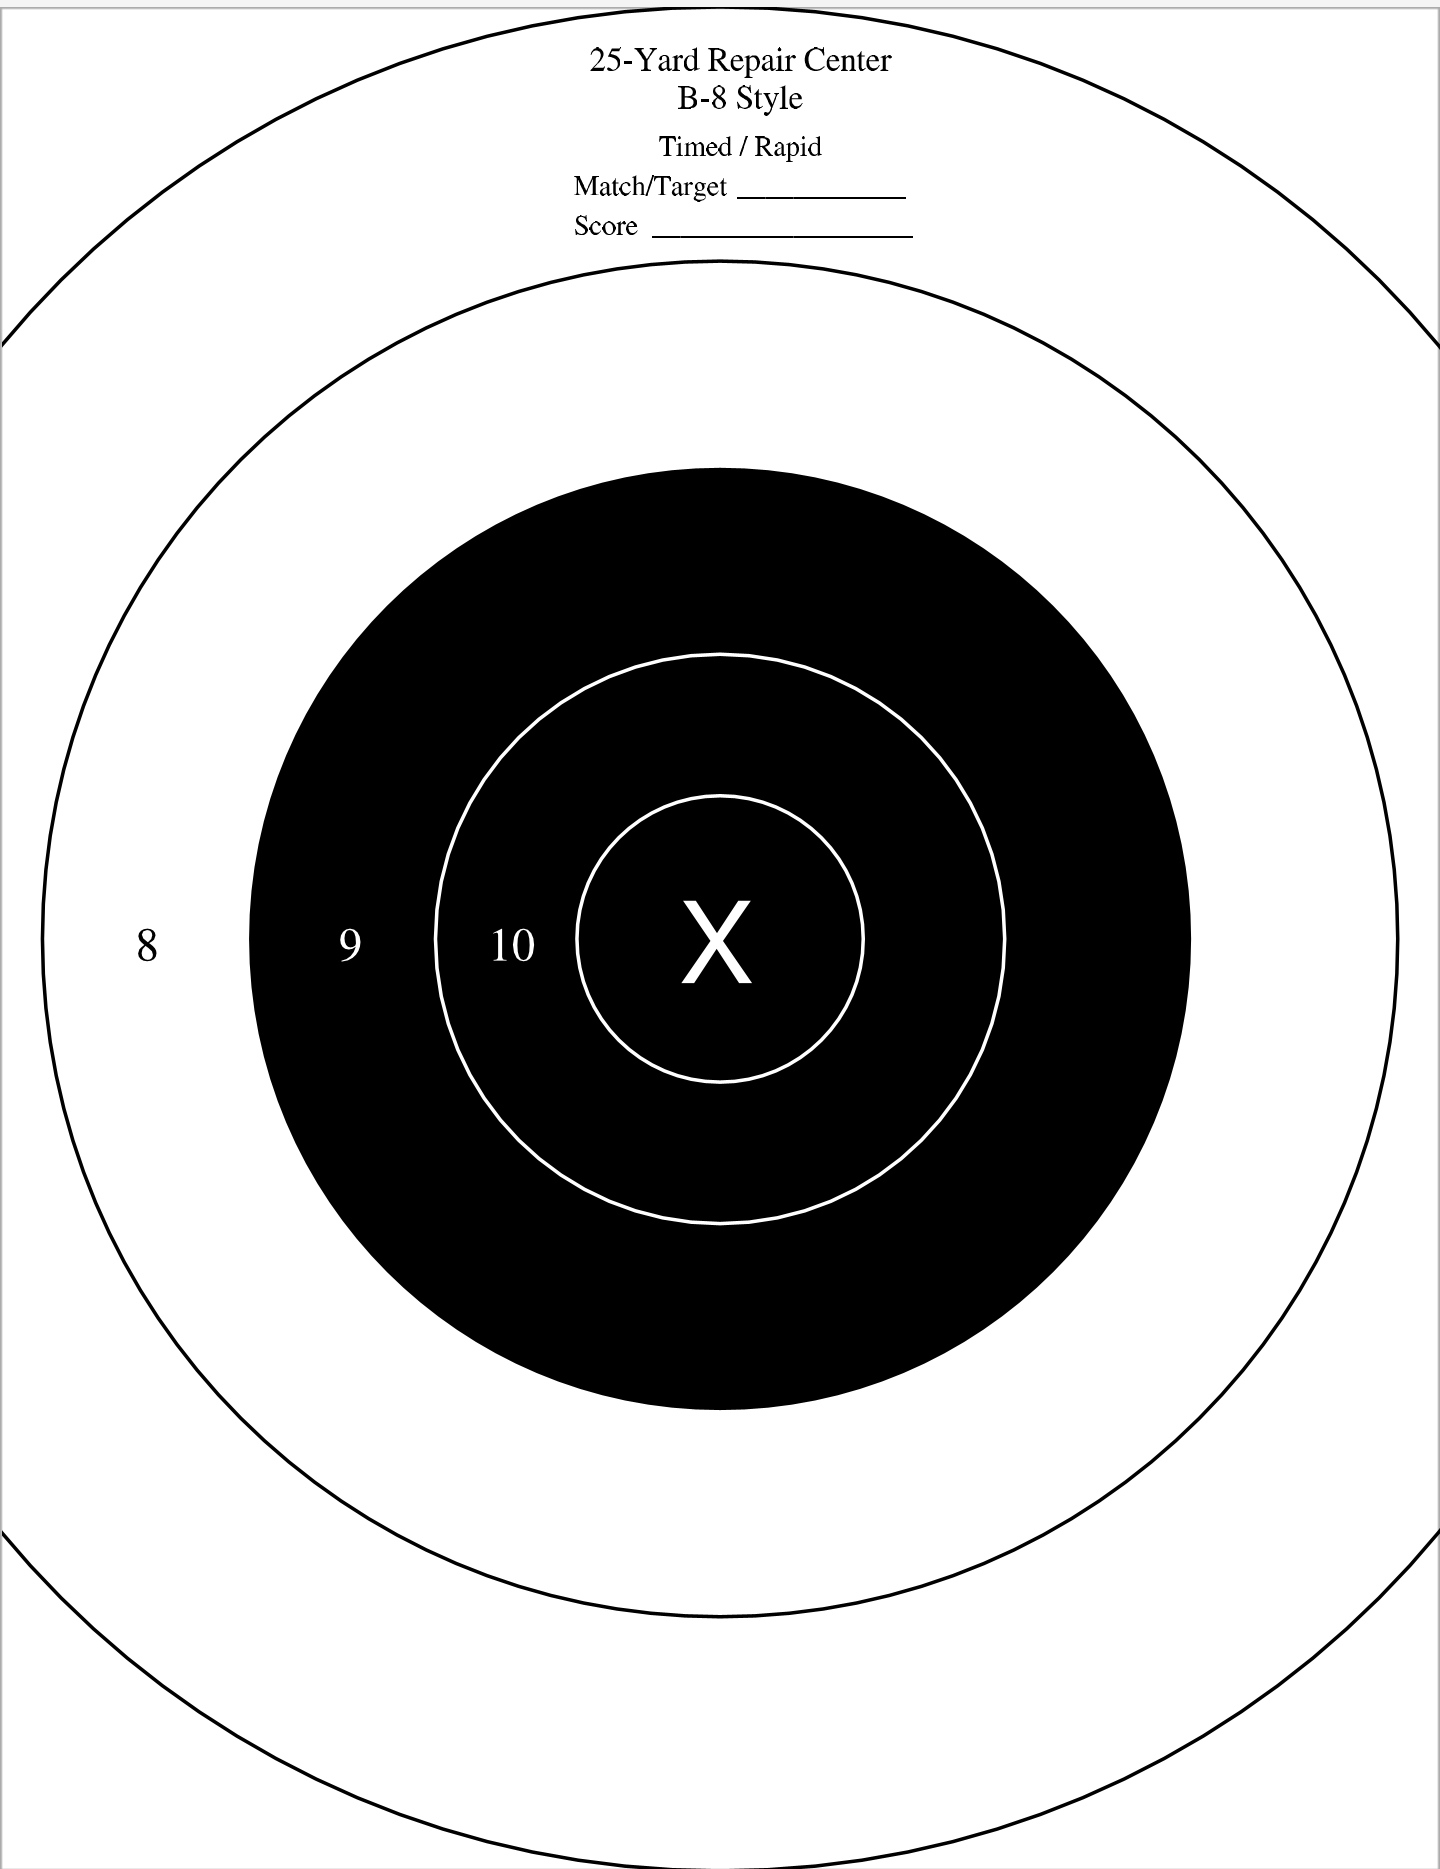 It is a picture of Nra B-8 Target Printable with t rex